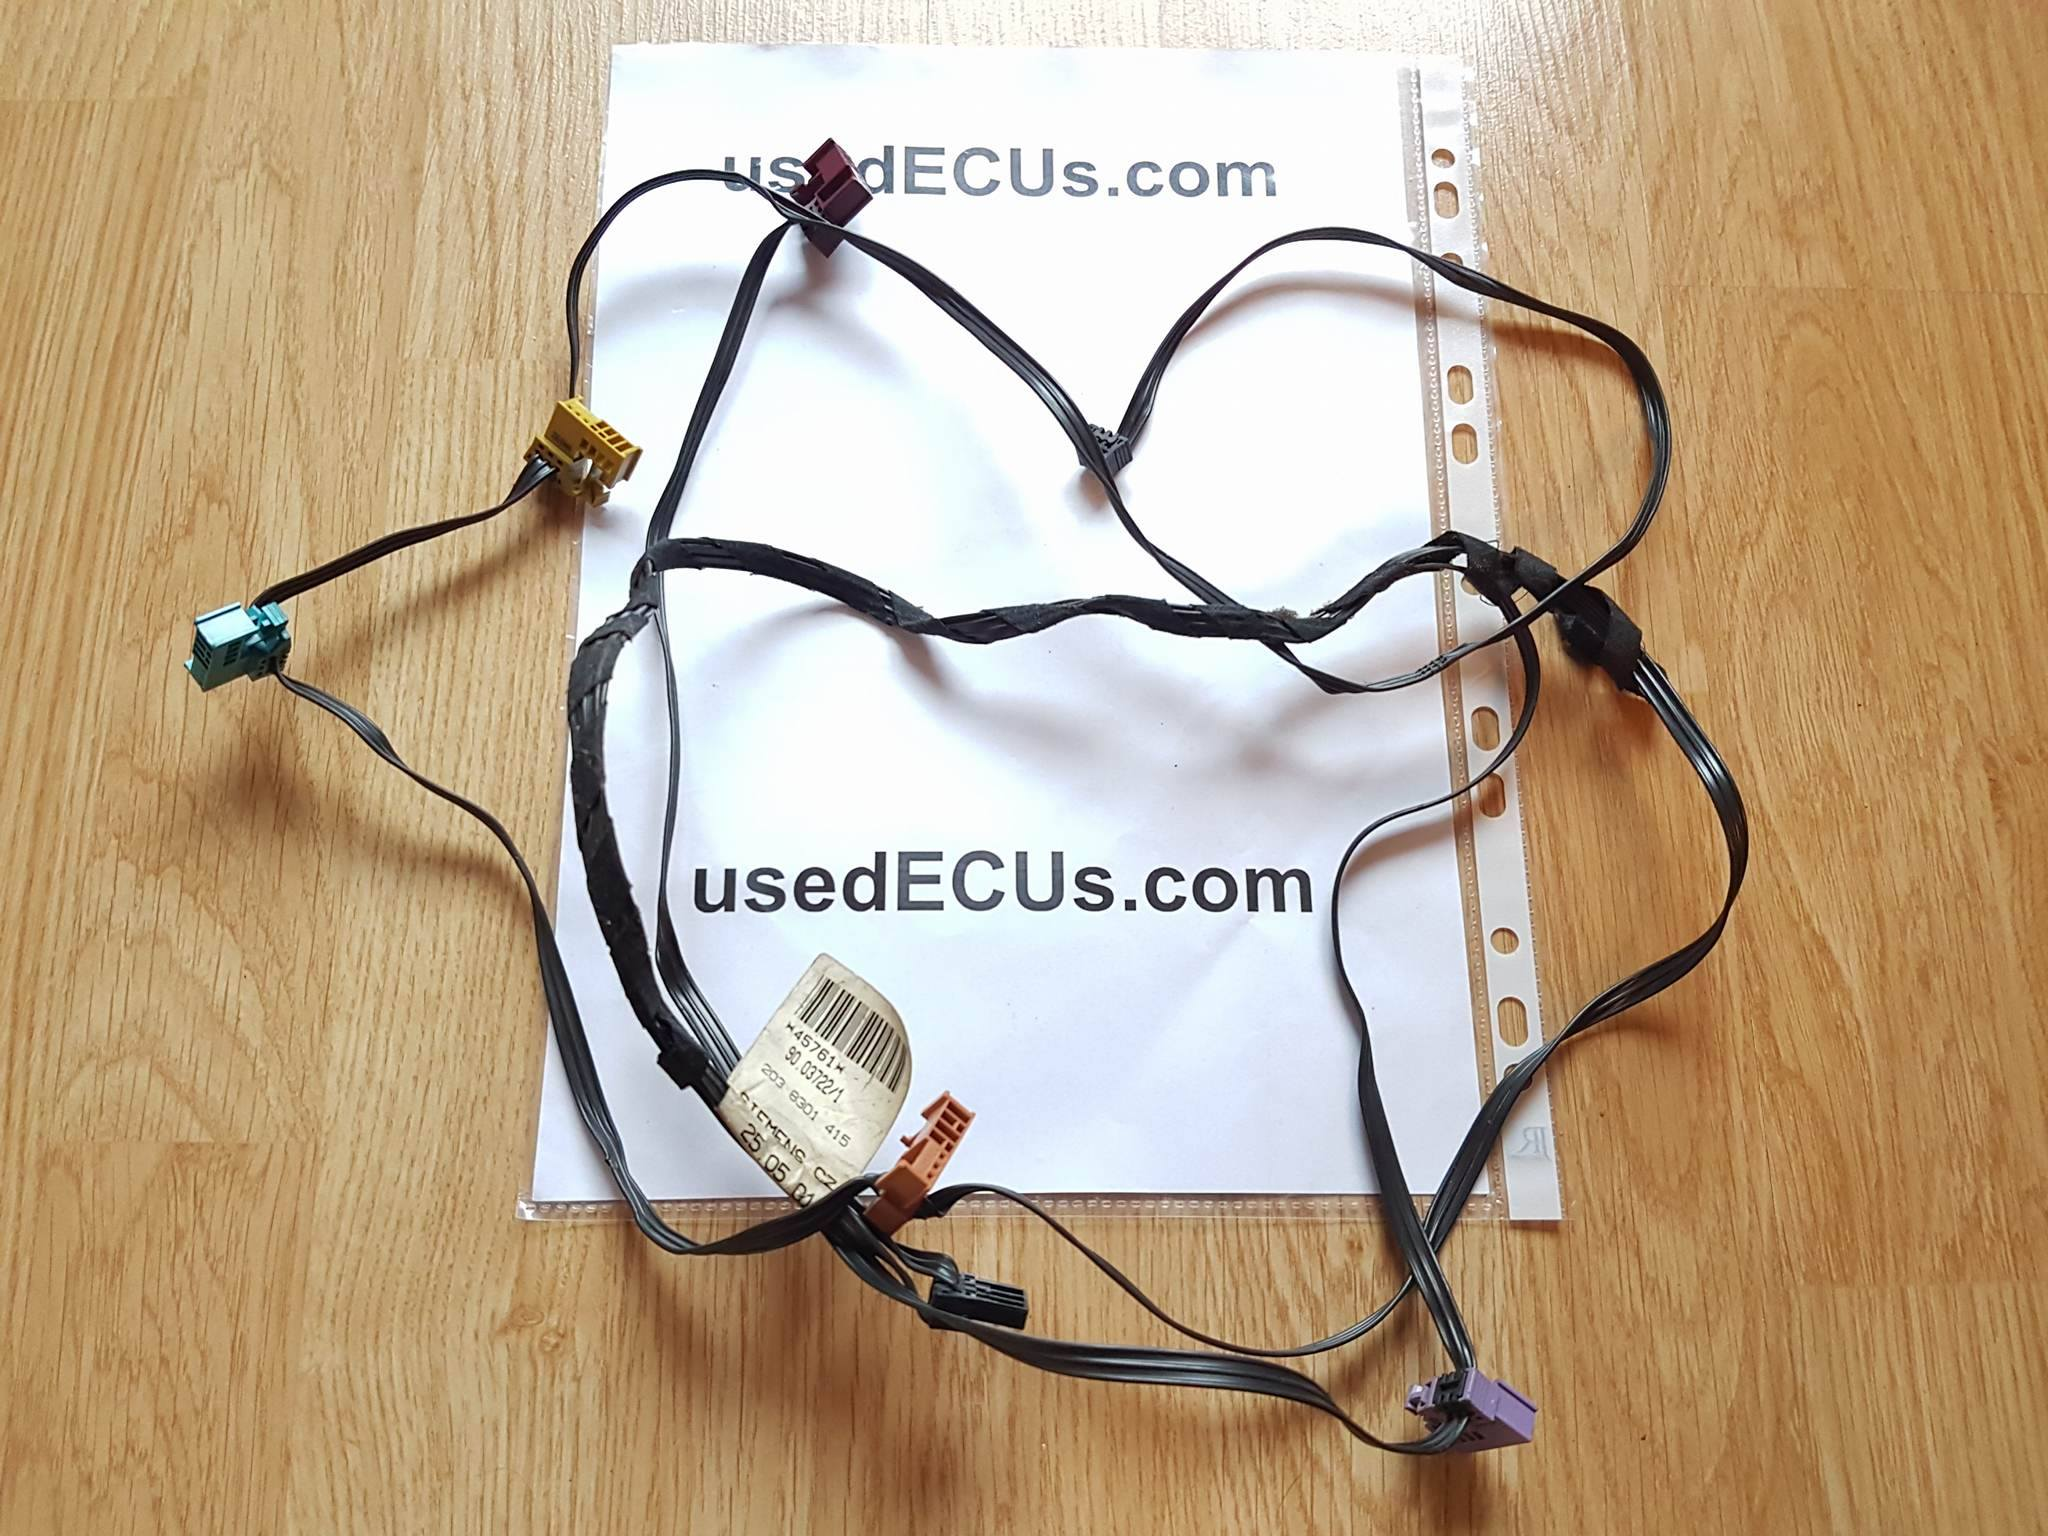 Mercedes Benz W203 Interior Heater Motor Wiring Loom Harness Engine 2038301415 Article